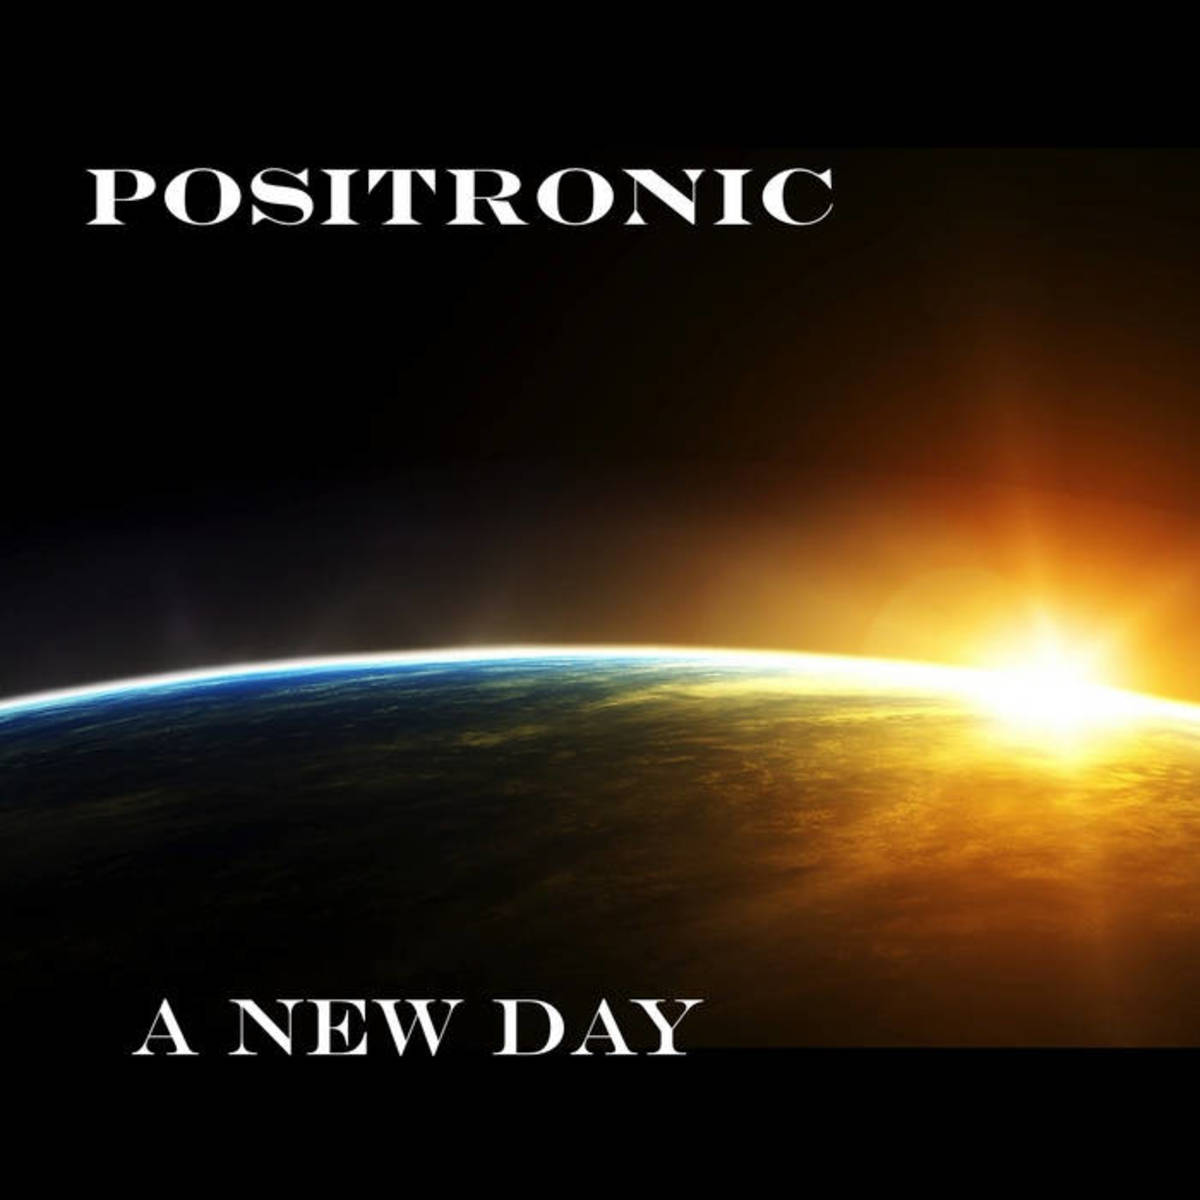 synth-pop-album-review-a-new-day-by-positronic